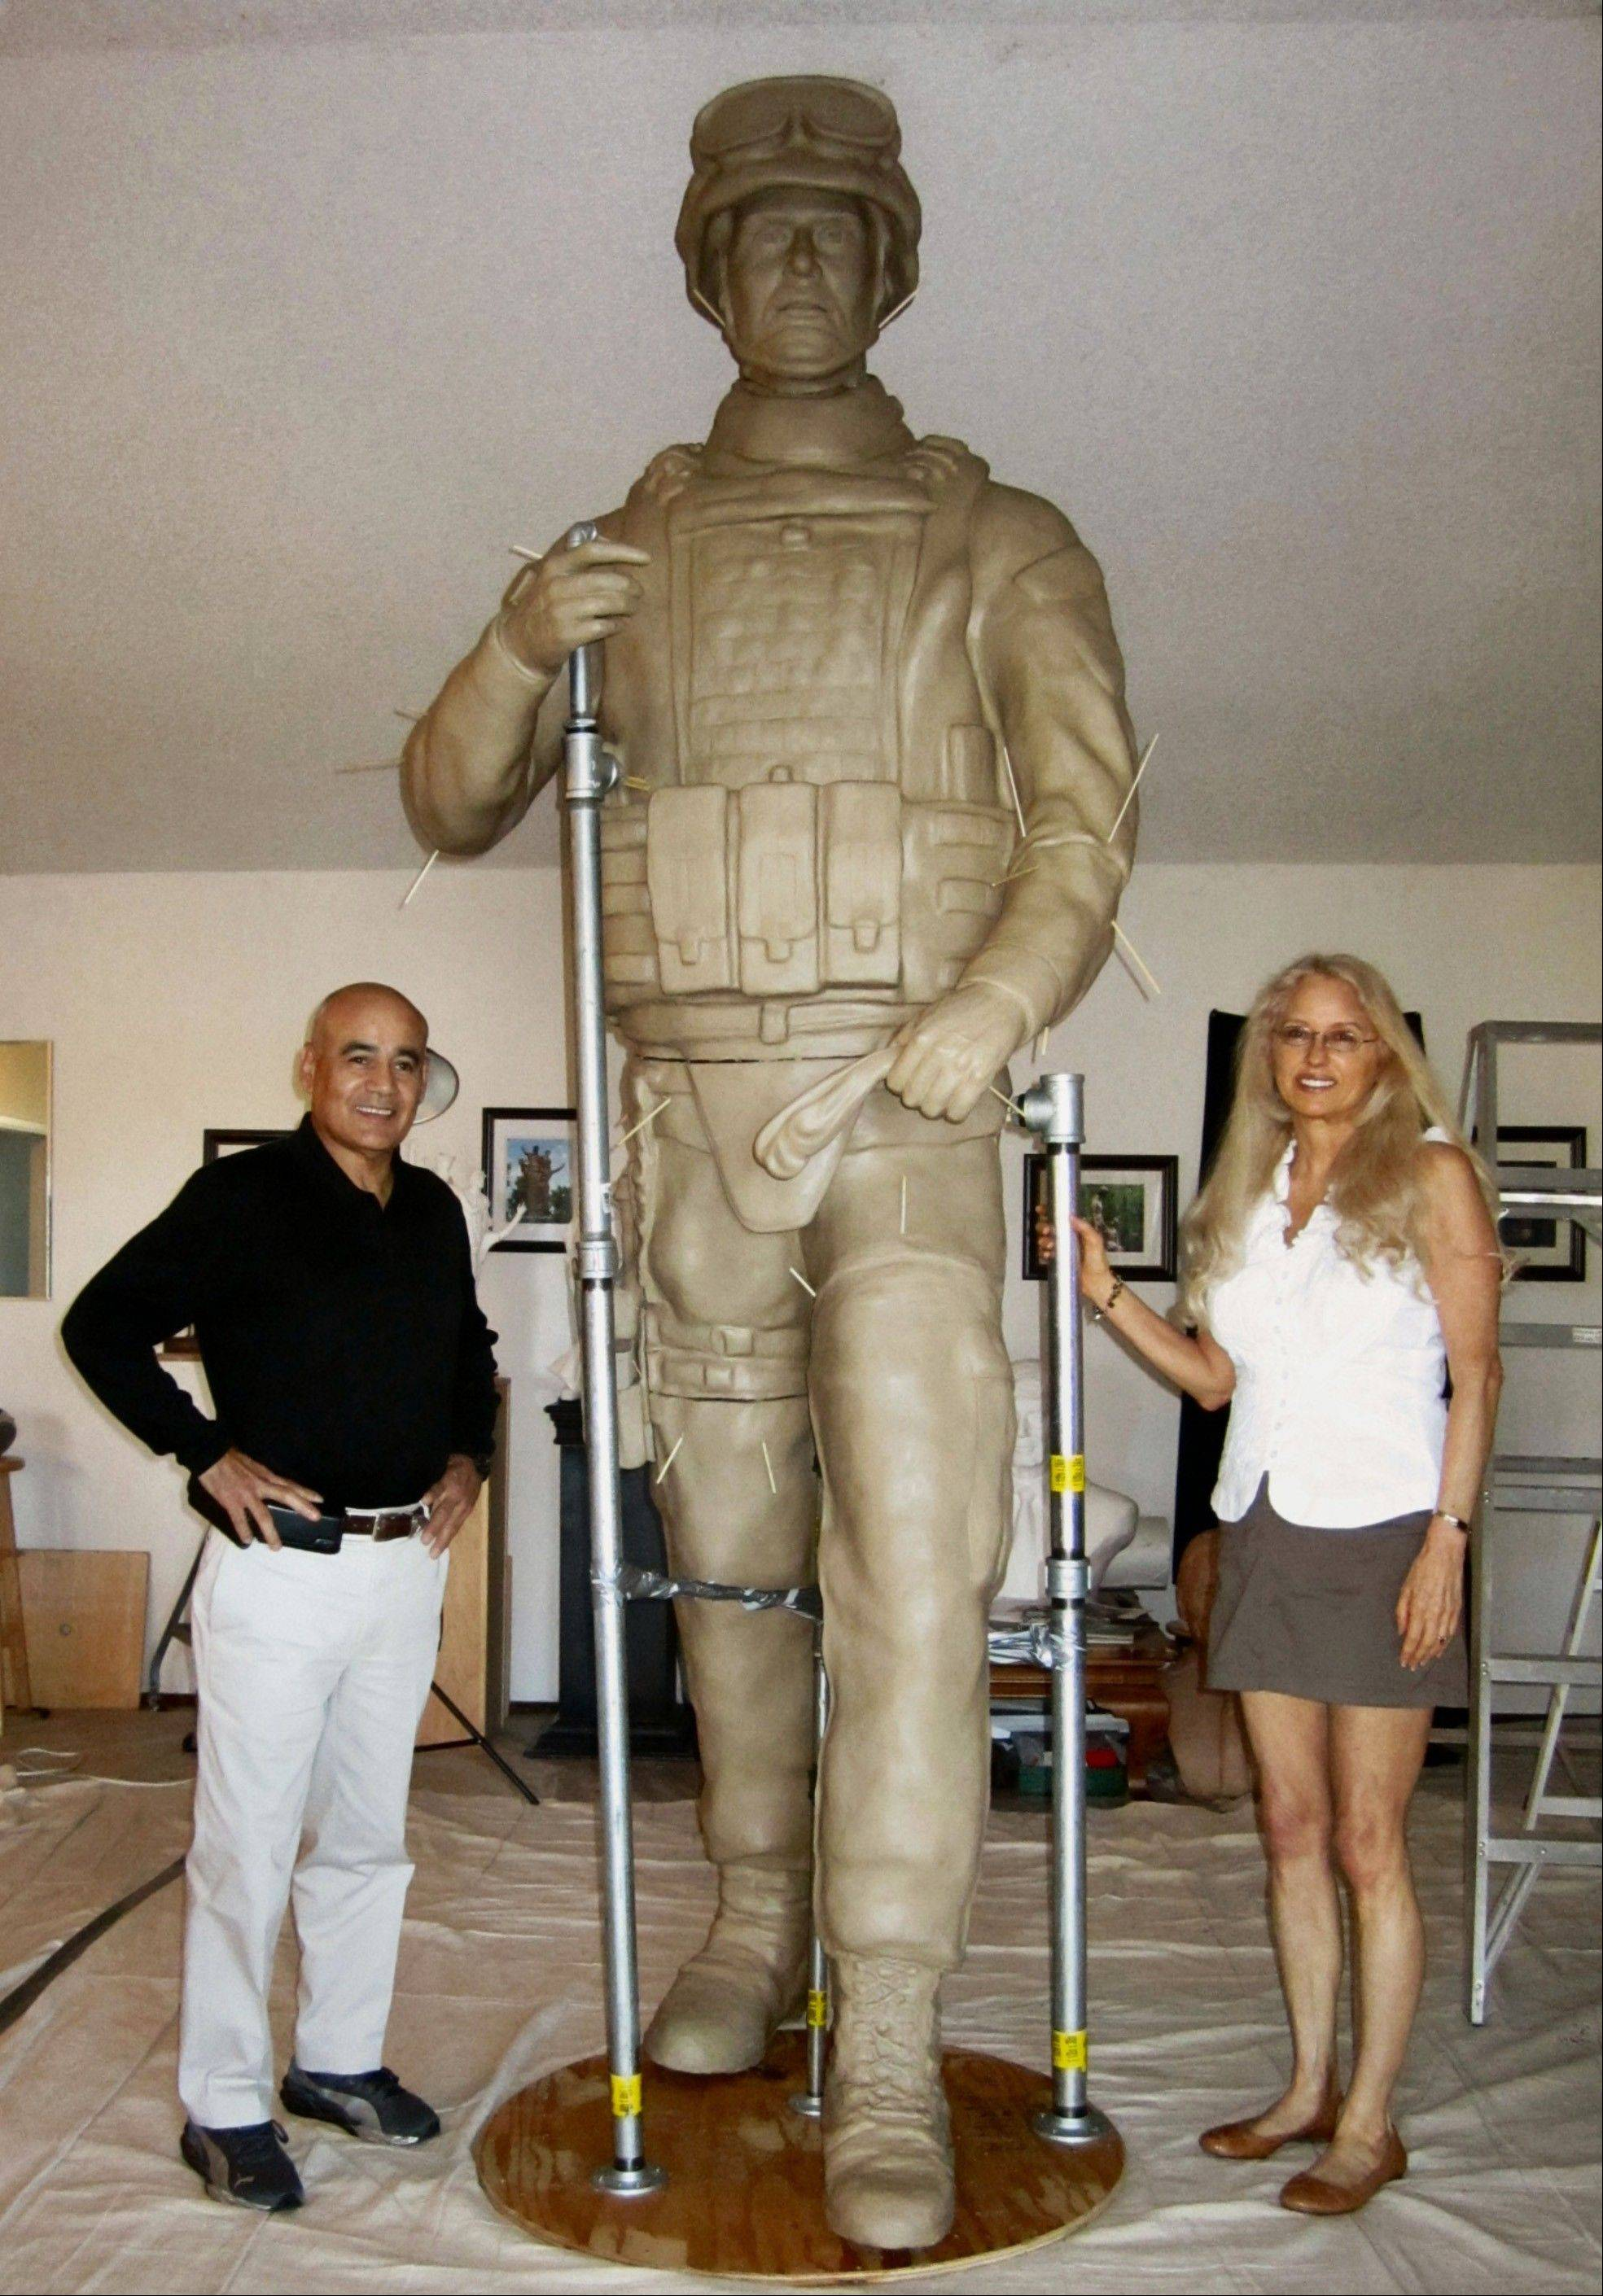 In this Aug. 2, 2012, publicity photo provided by Natural Balance, war handler veteran, author and designer, John Burnam, left, and veteran portrait sculptor, Paula Slater, stand with the silicon bronze 9.5-feet tall military dog handler that is part of the U.S. Working Dogs Teams National Monument shown in the Sculptor's Studio in Hidden Valley Lake in California.